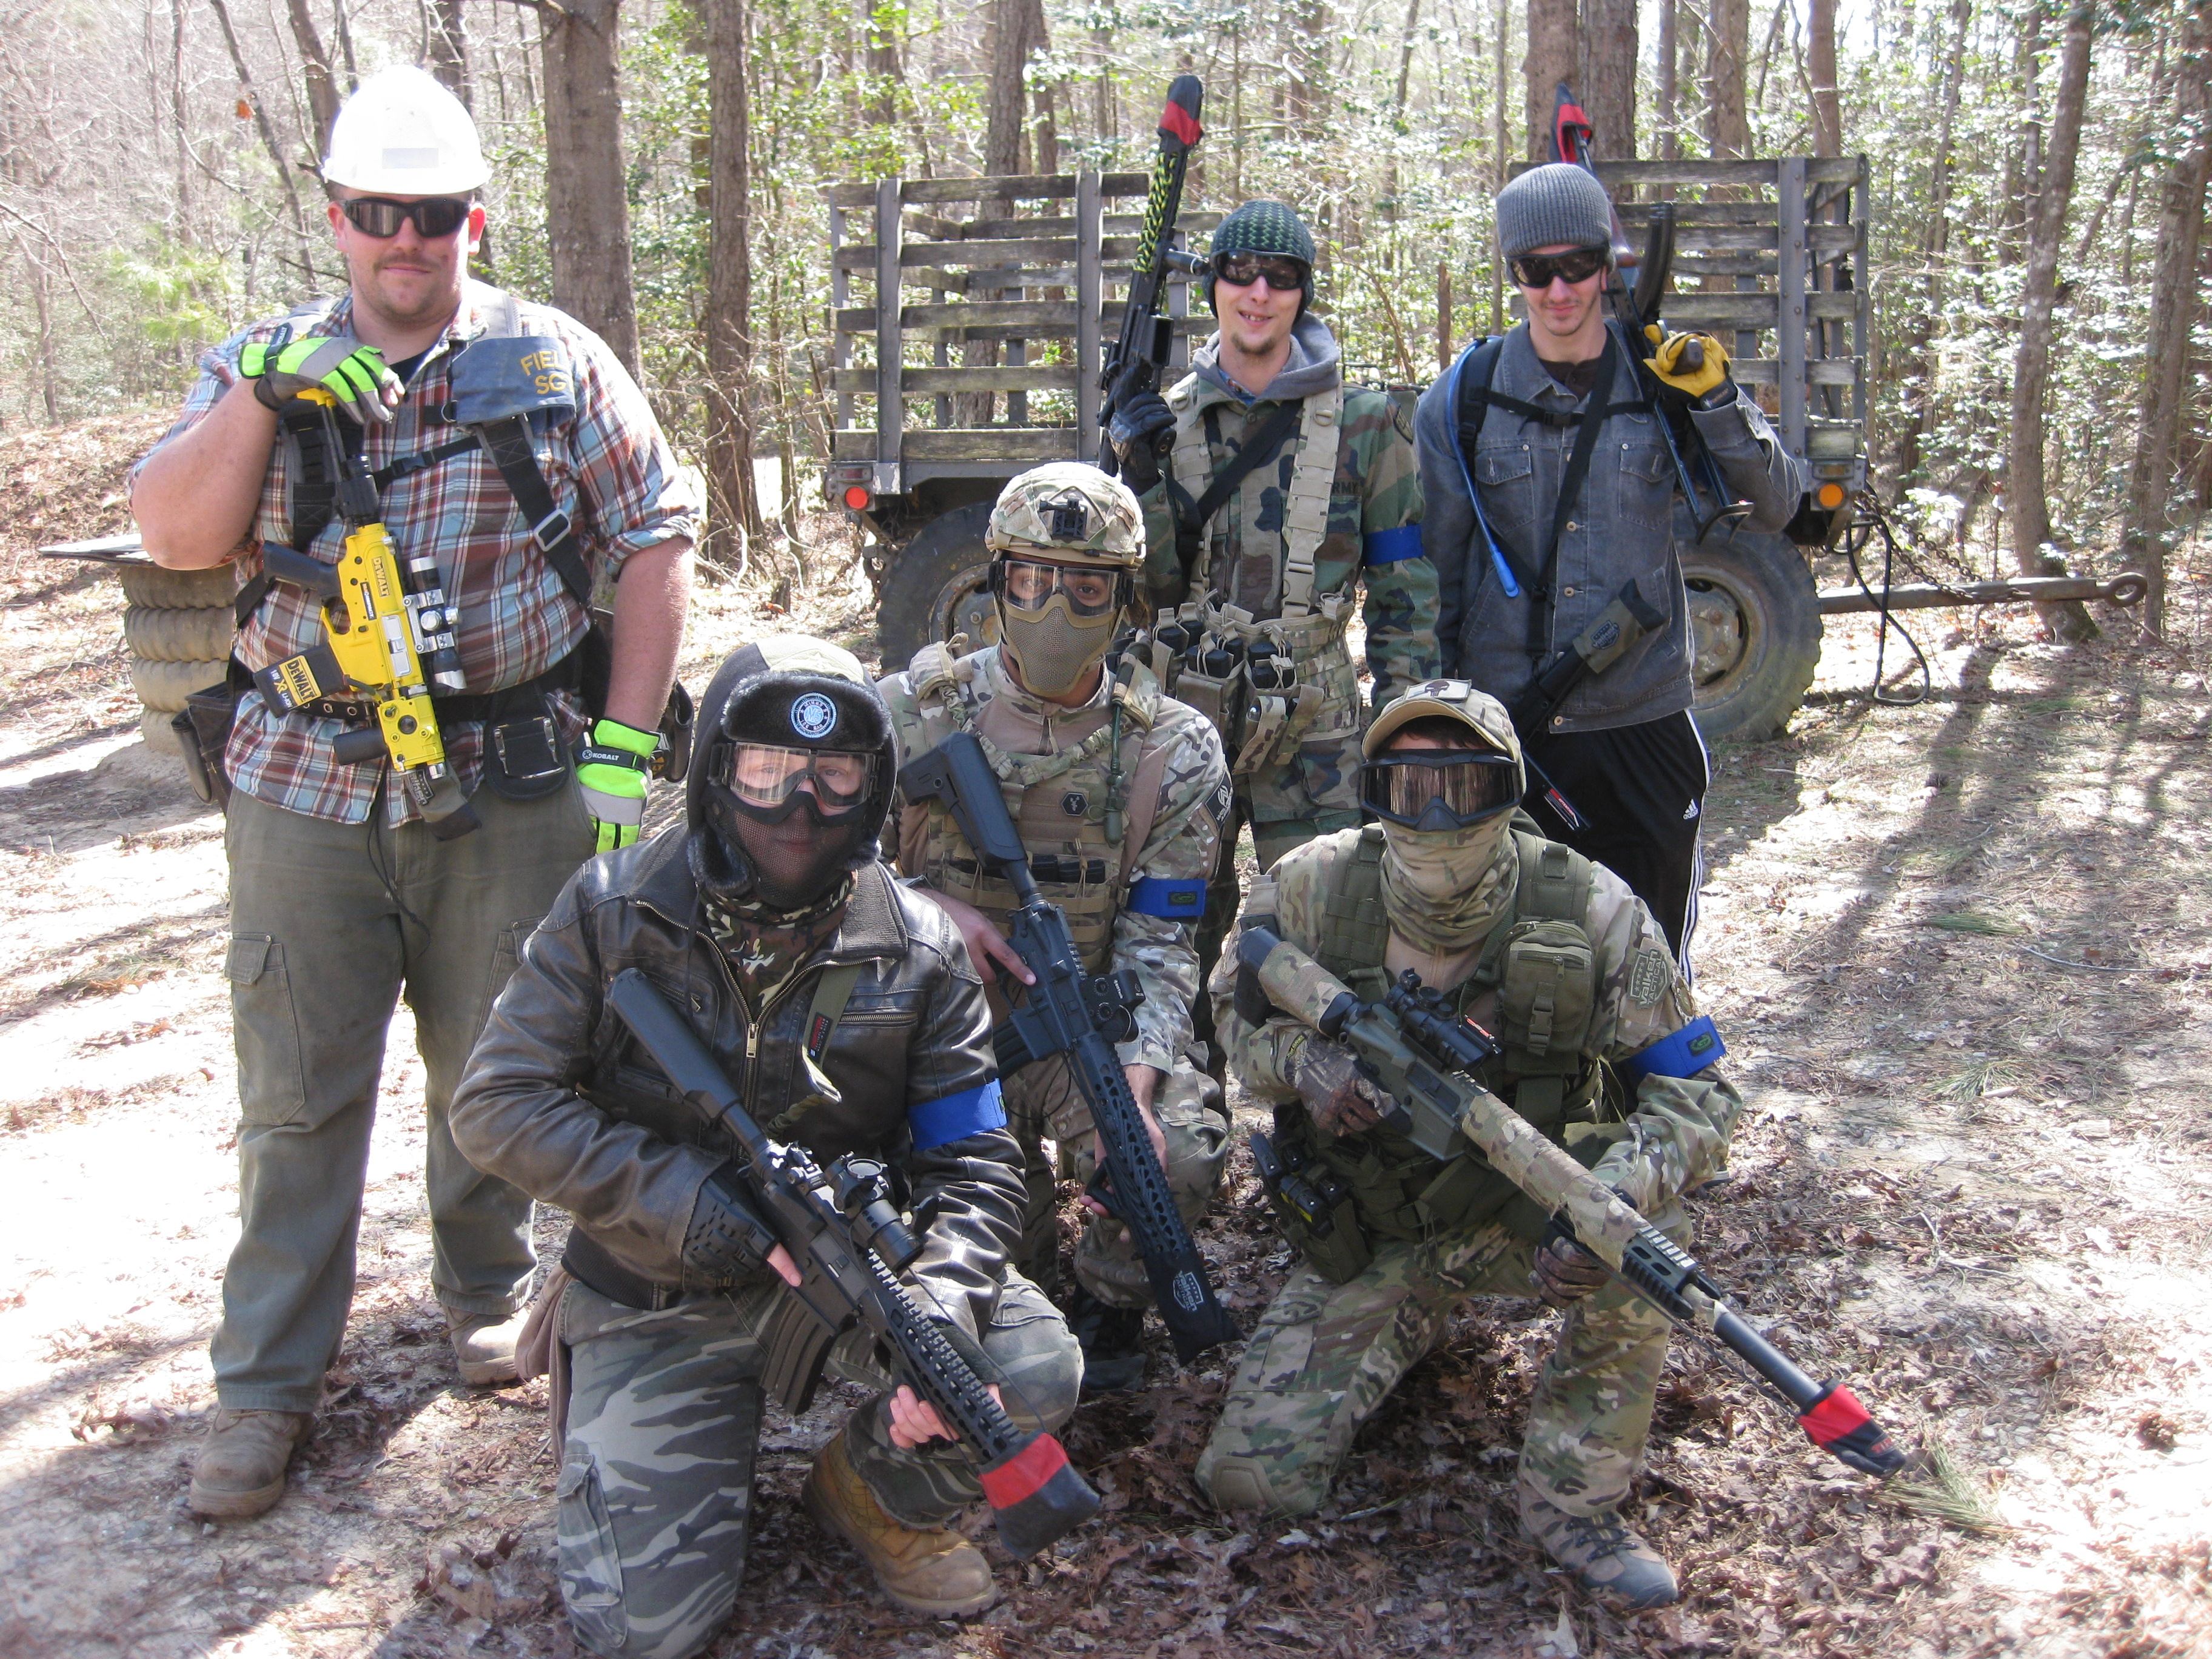 With fellow Airsoft players